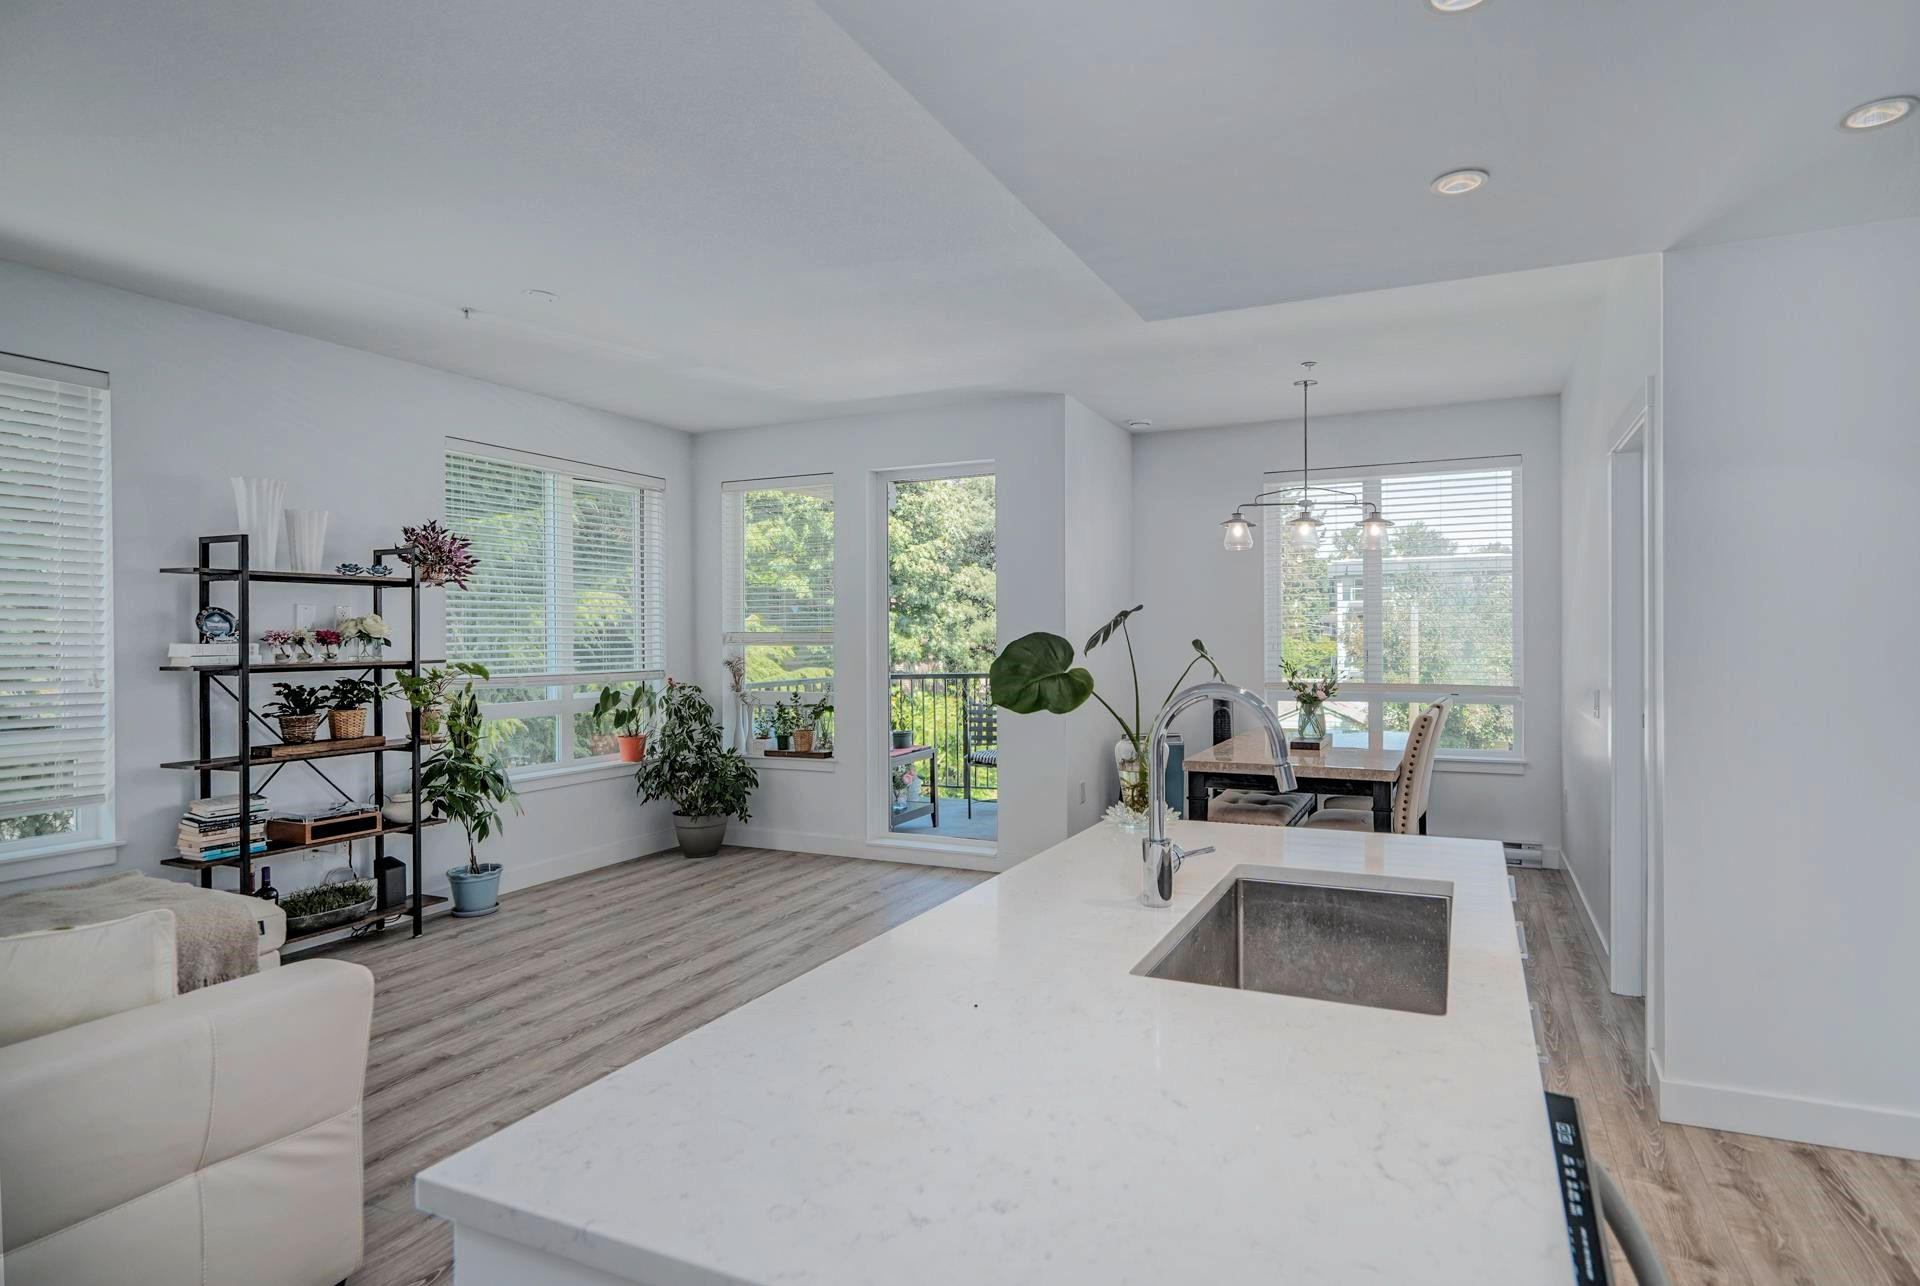 """Main Photo: 313 2382 ATKINS Avenue in Port Coquitlam: Central Pt Coquitlam Condo for sale in """"Parc East"""" : MLS®# R2604837"""